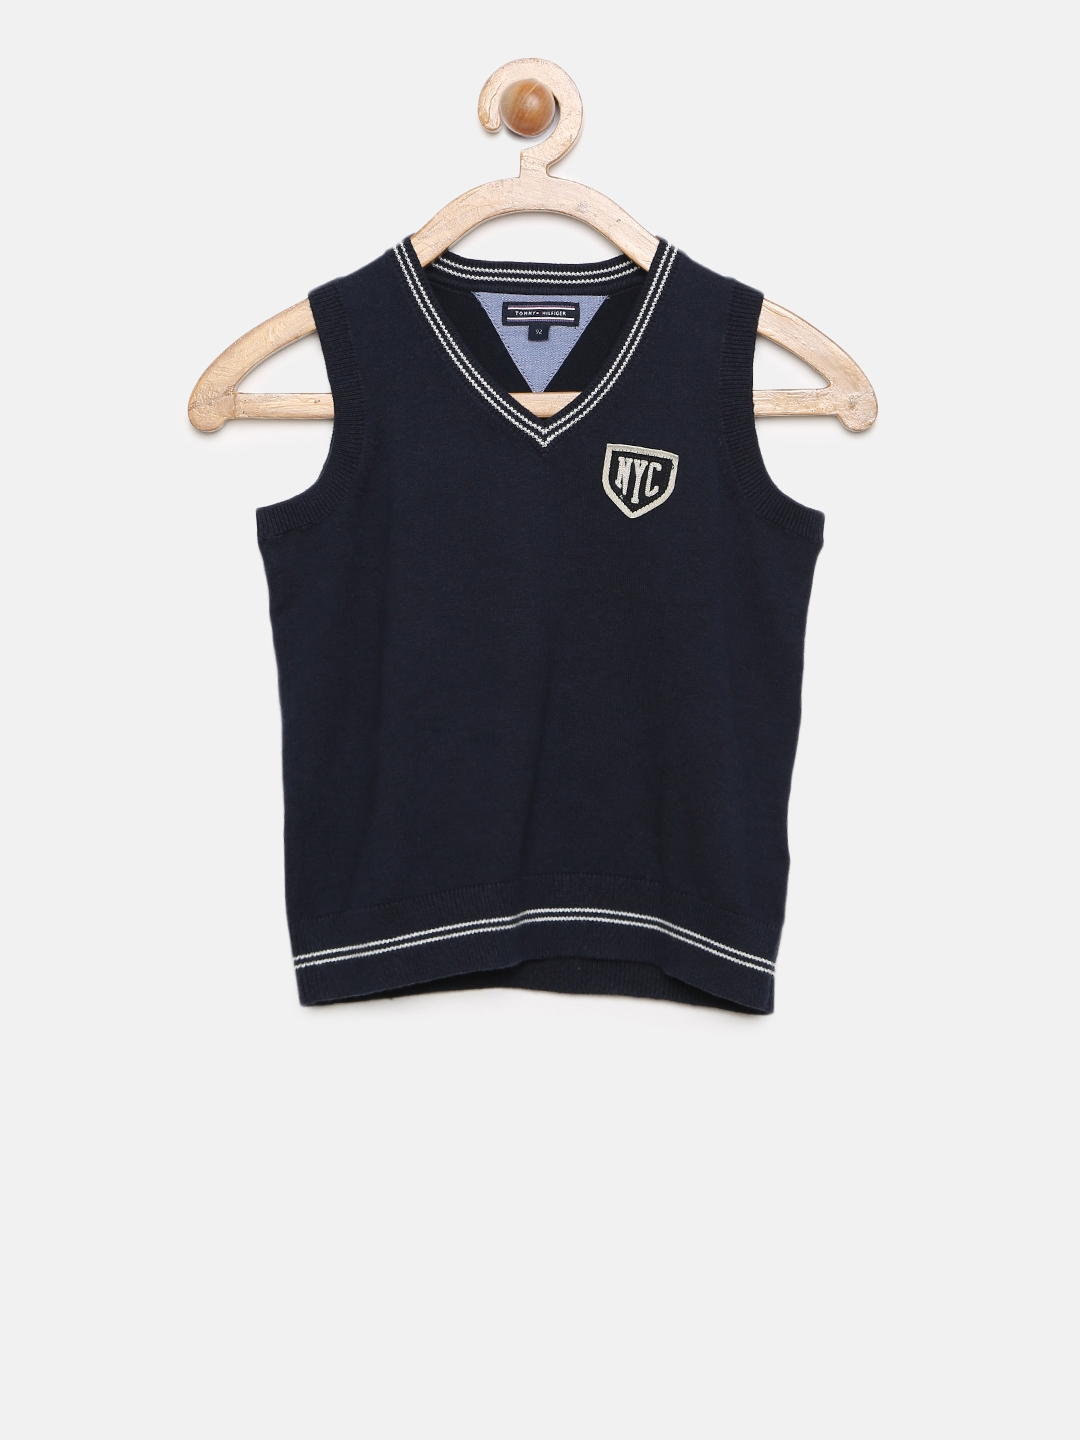 2500d27593f54 Buy Tommy Hilfiger Boys Navy Solid Sleeveless Sweater - Sweaters for ...